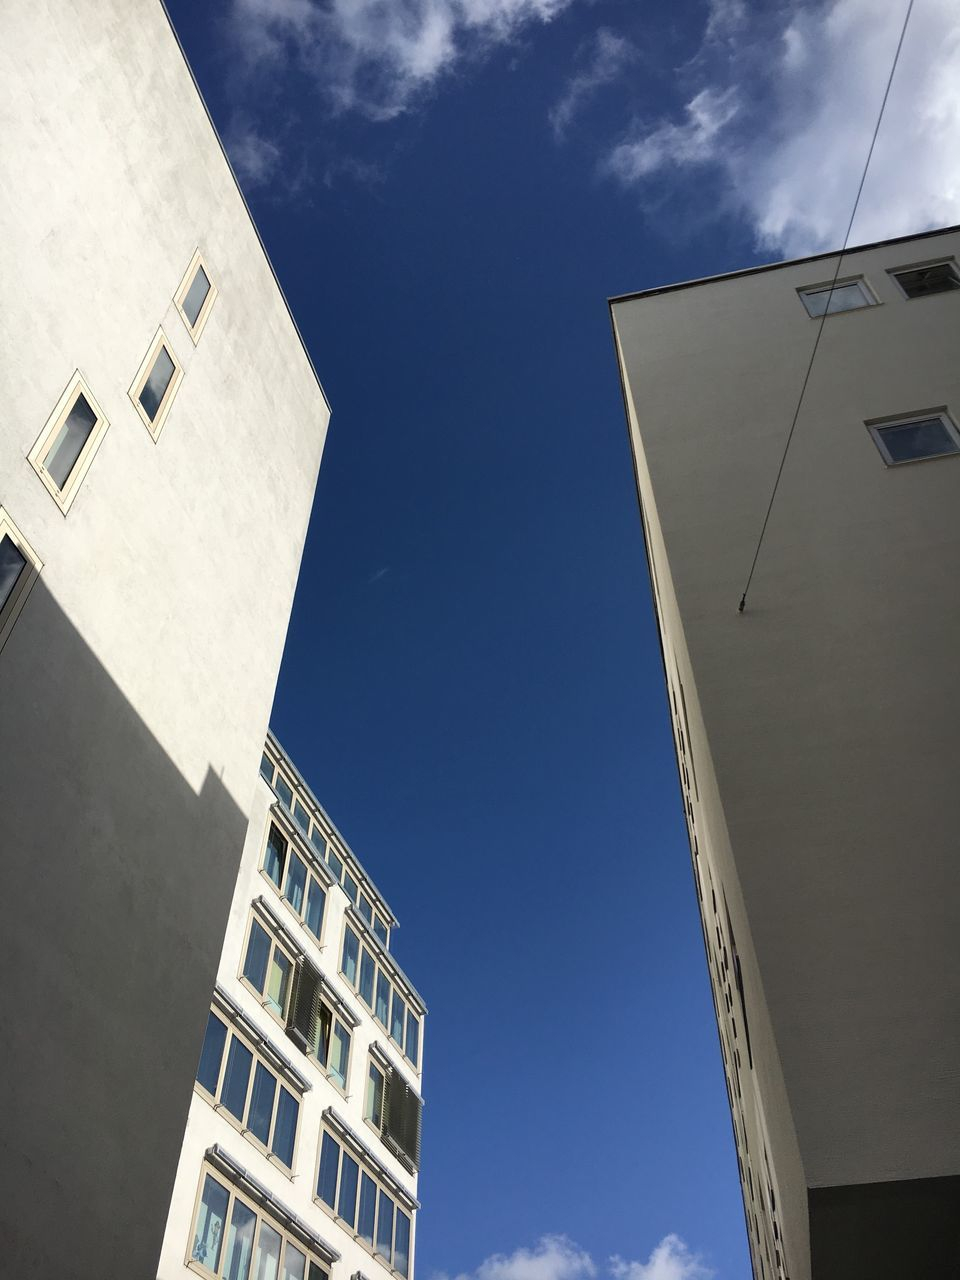 architecture, low angle view, building exterior, built structure, sky, day, cloud - sky, outdoors, no people, sunlight, nature, city